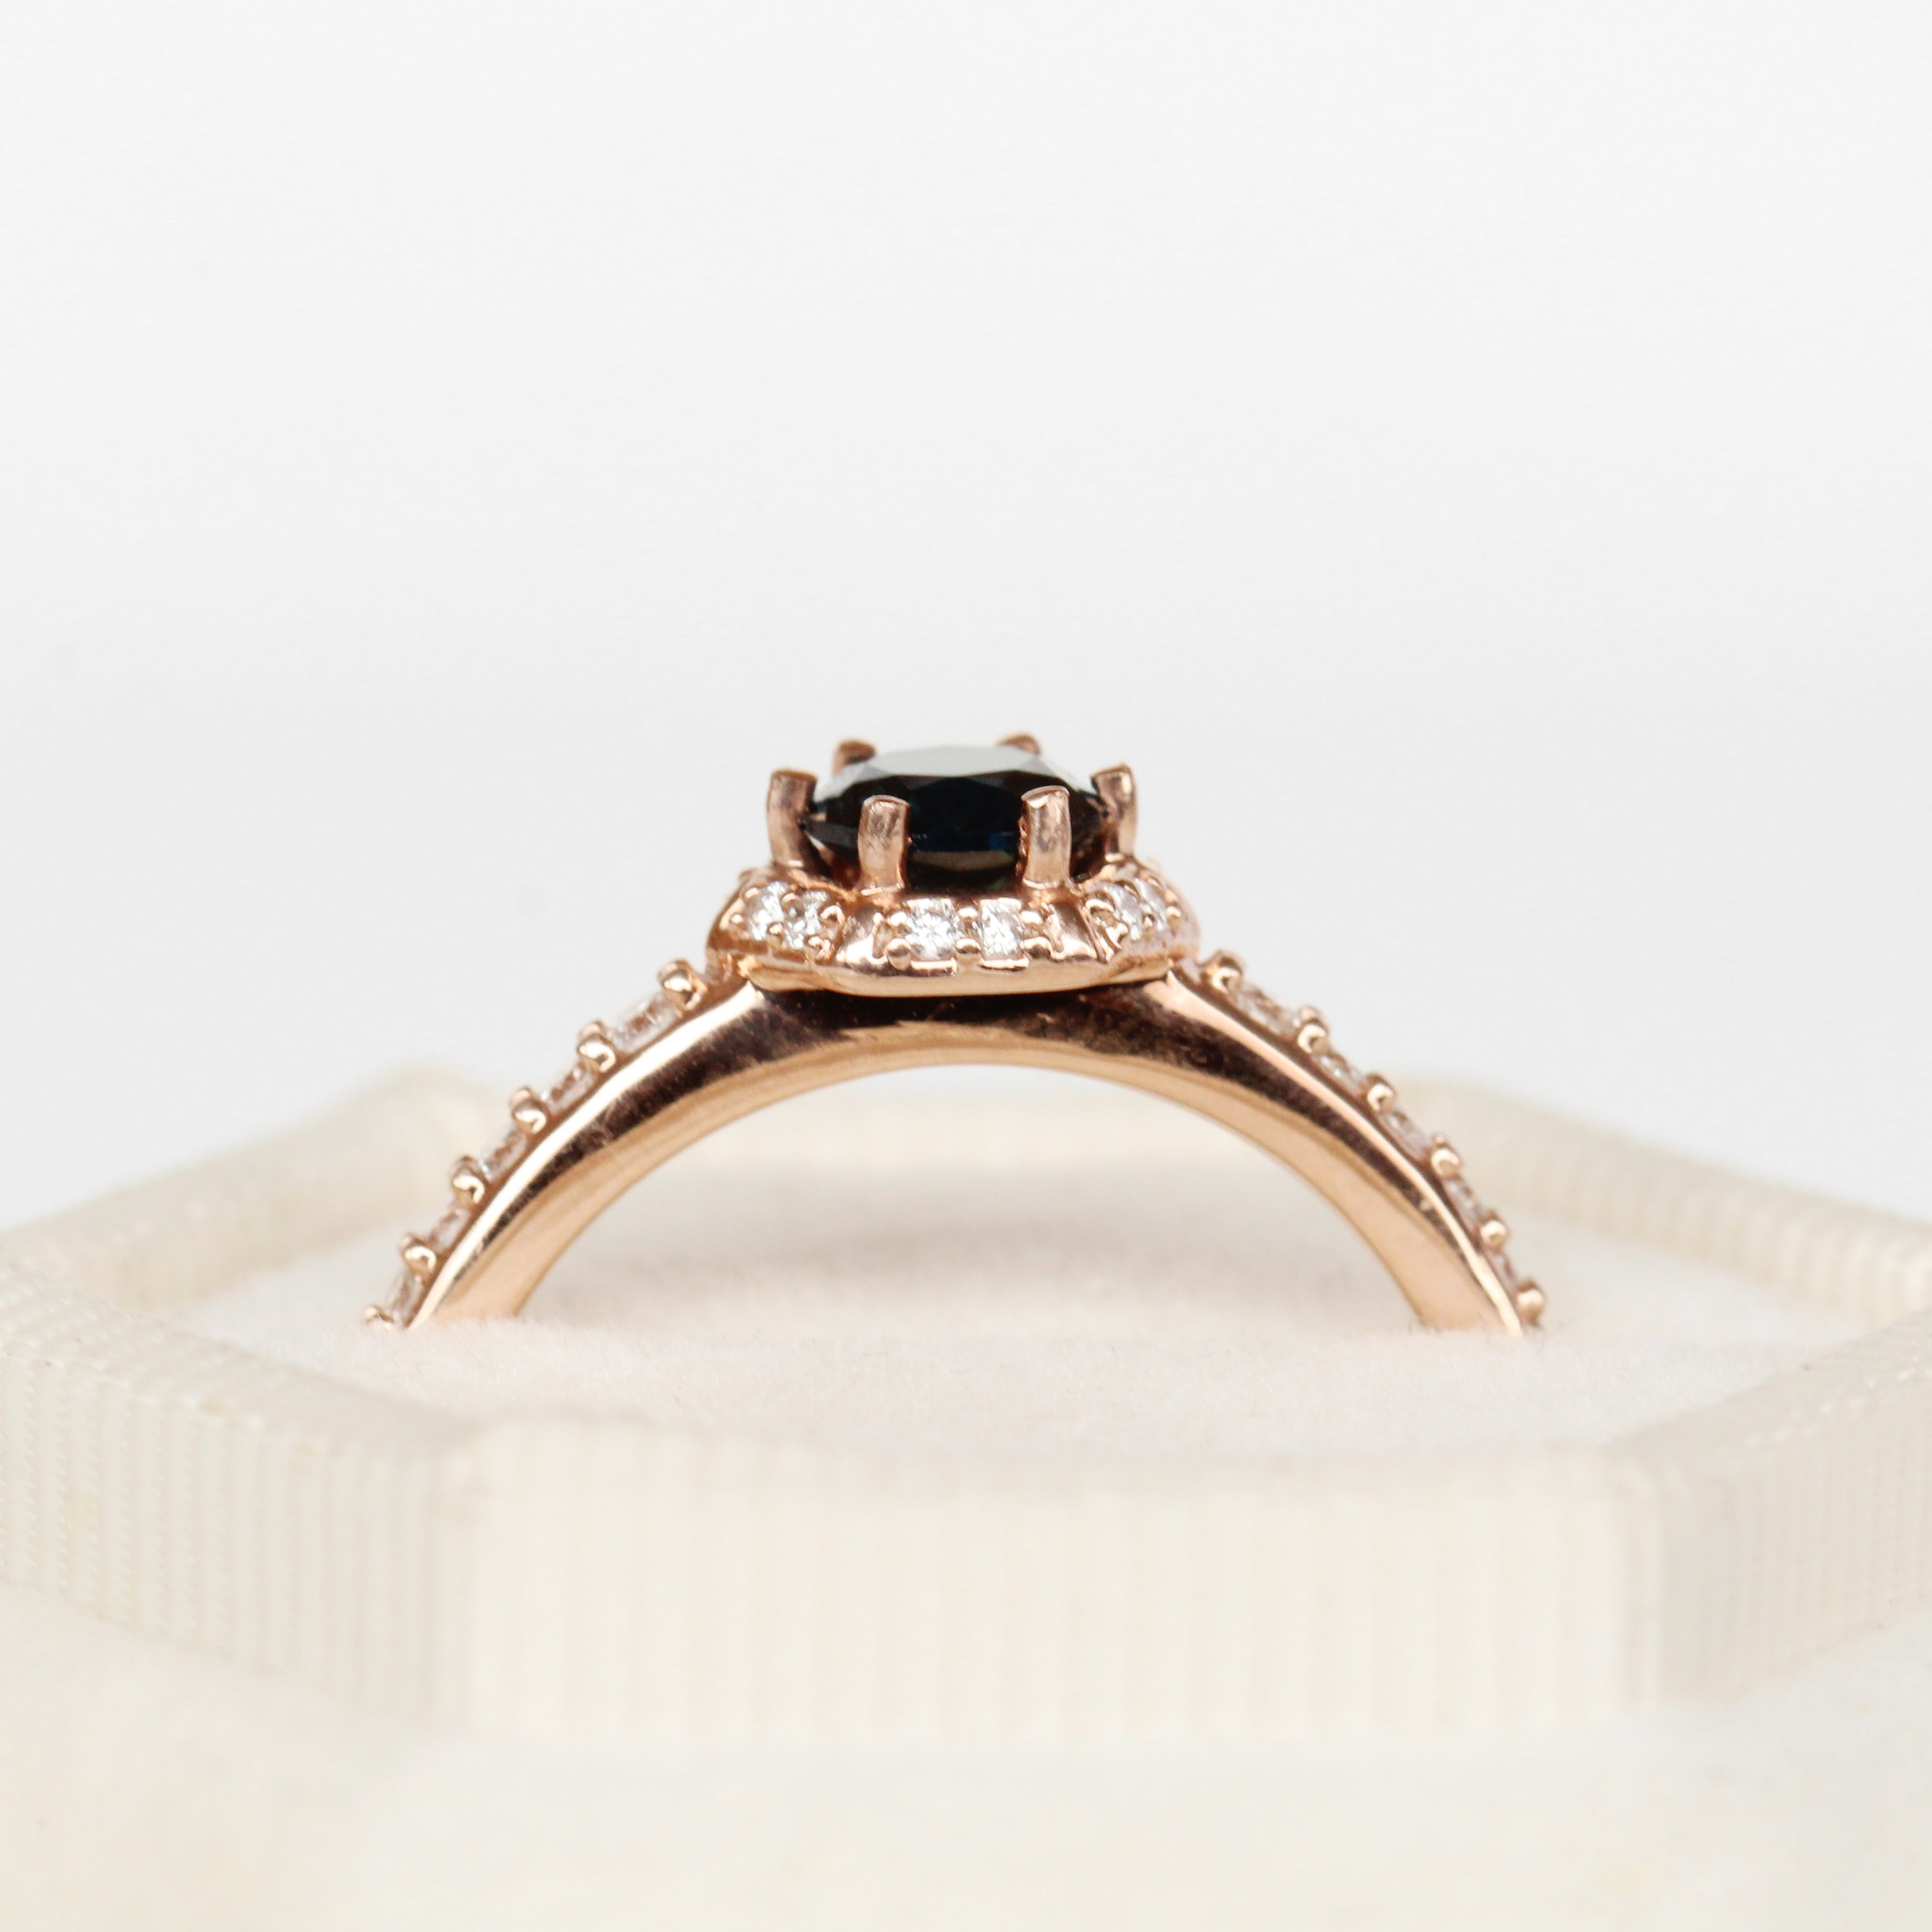 Adrien Ring with a Sapphire and Diamonds in 10k Rose Gold - Ready to Size and Ship